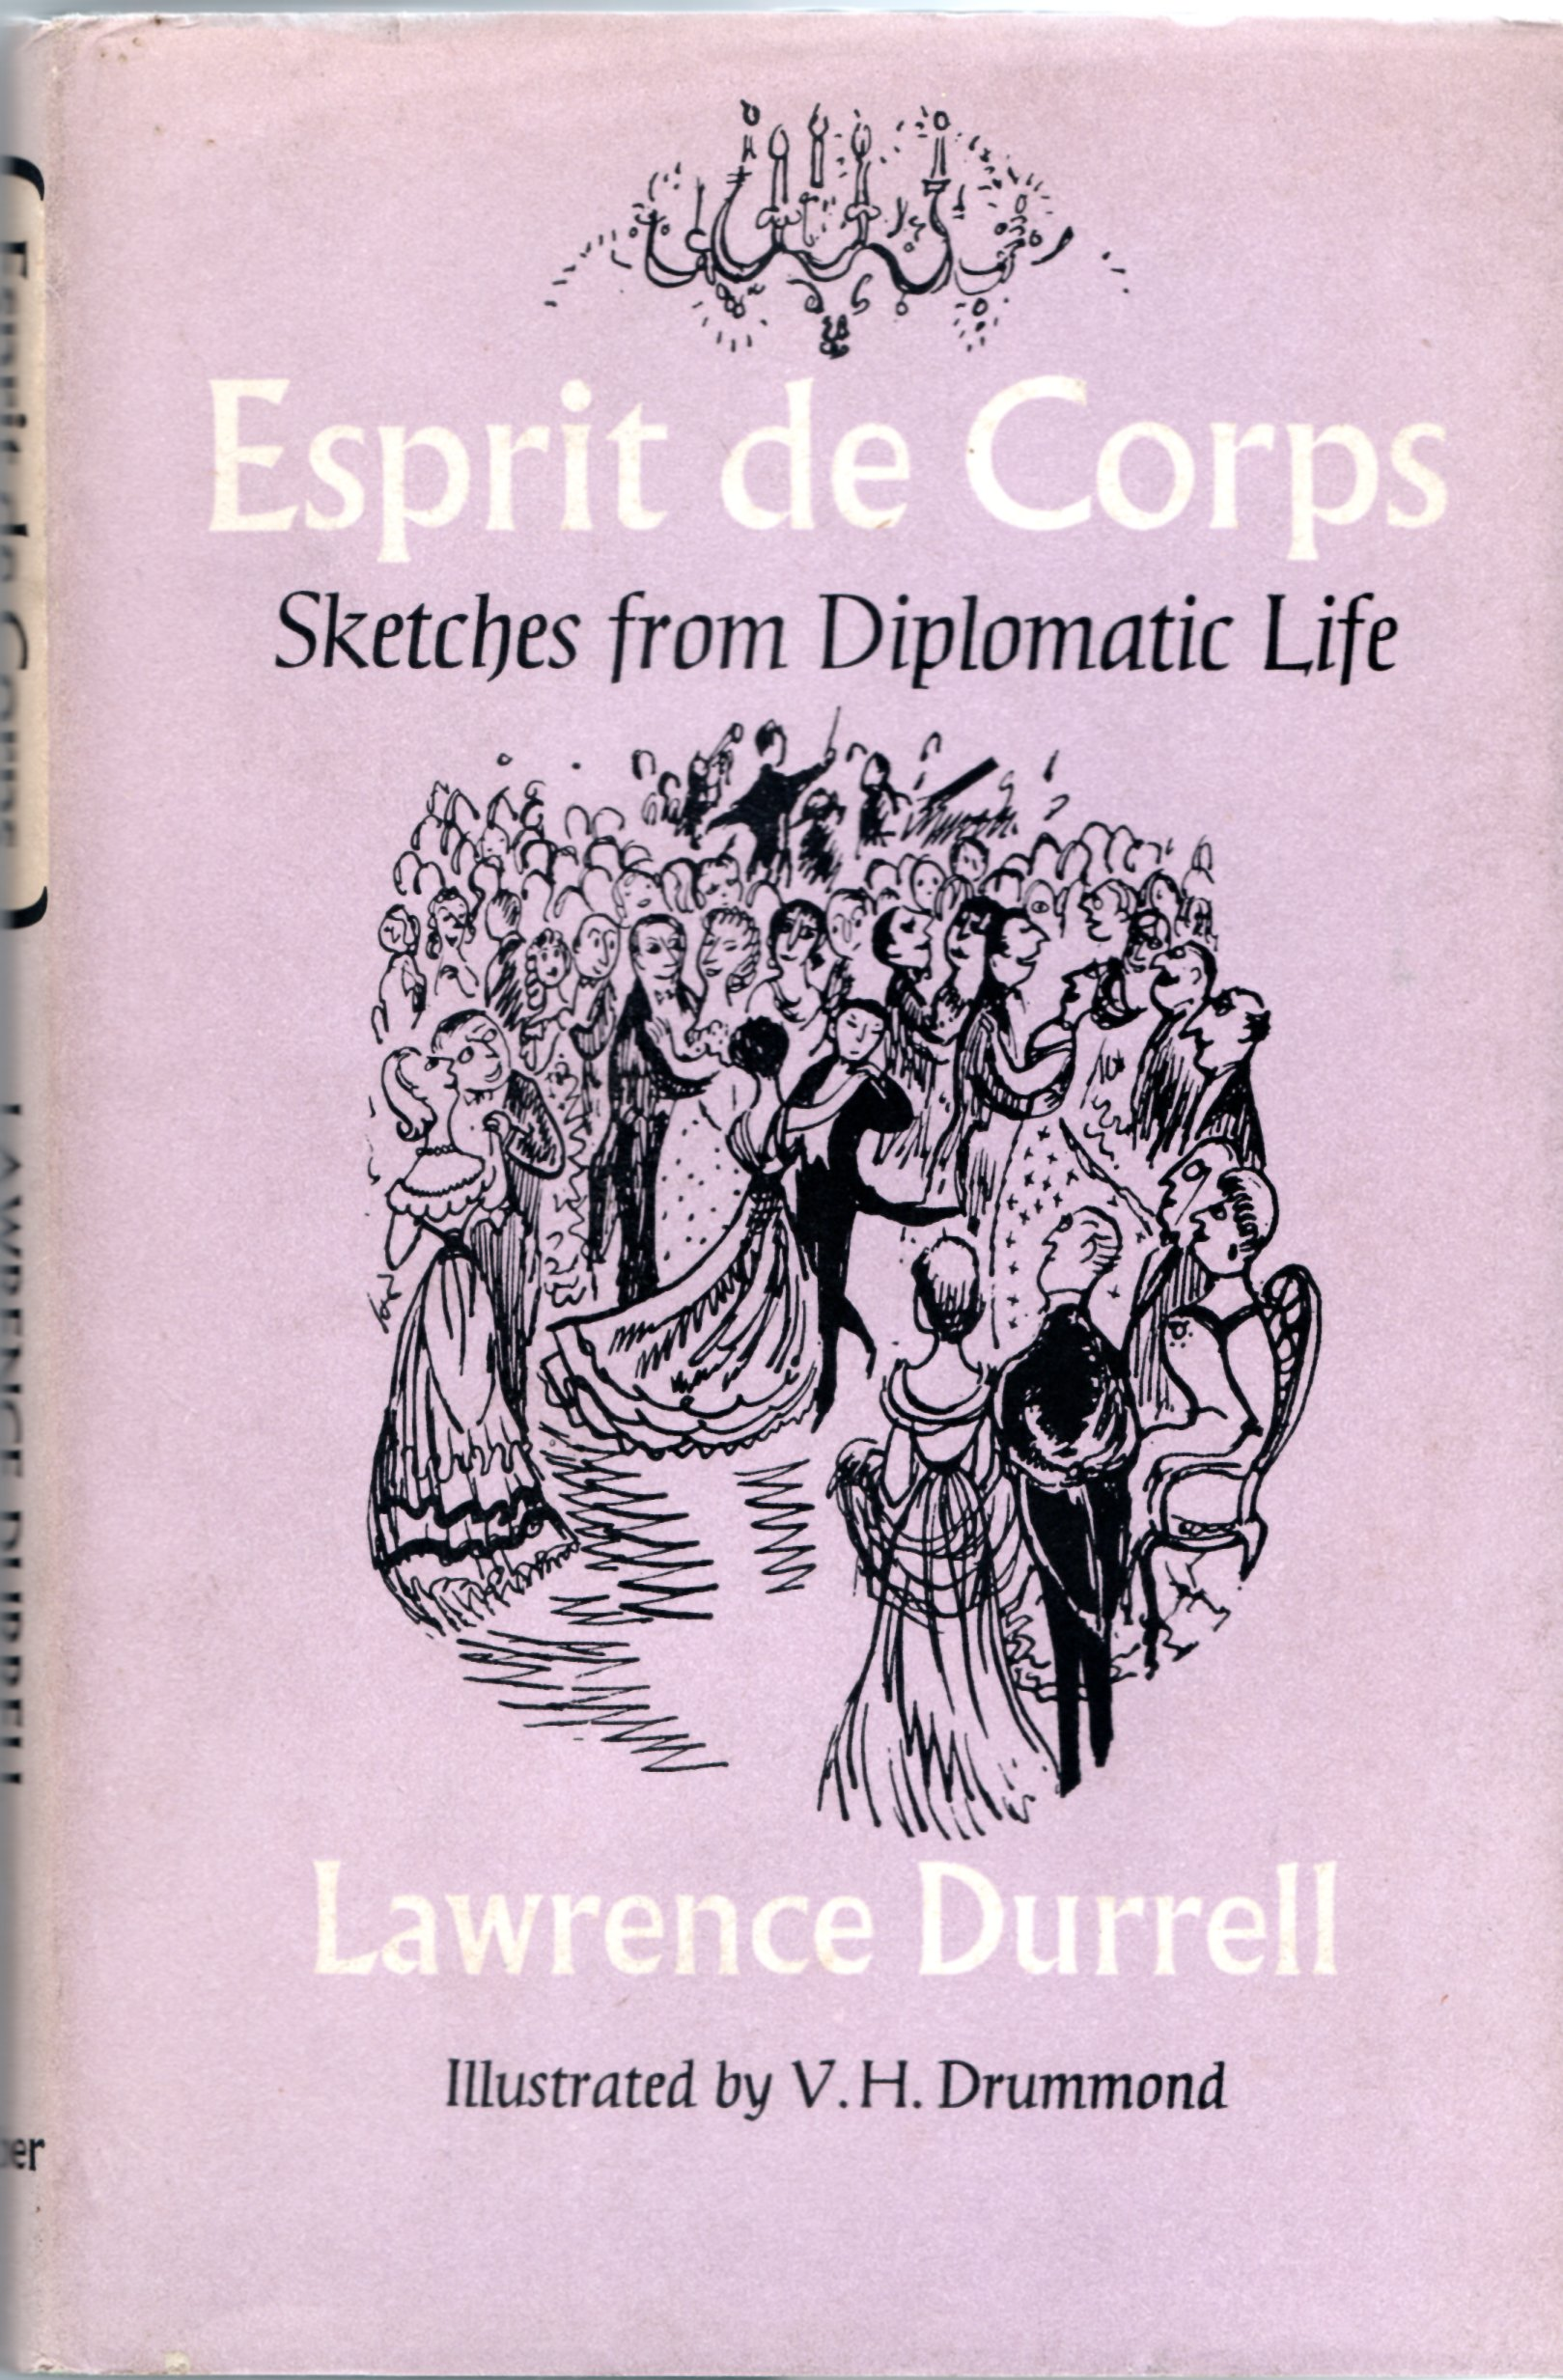 Image for Esprit de Corps: Sketches from Diplomatic Life